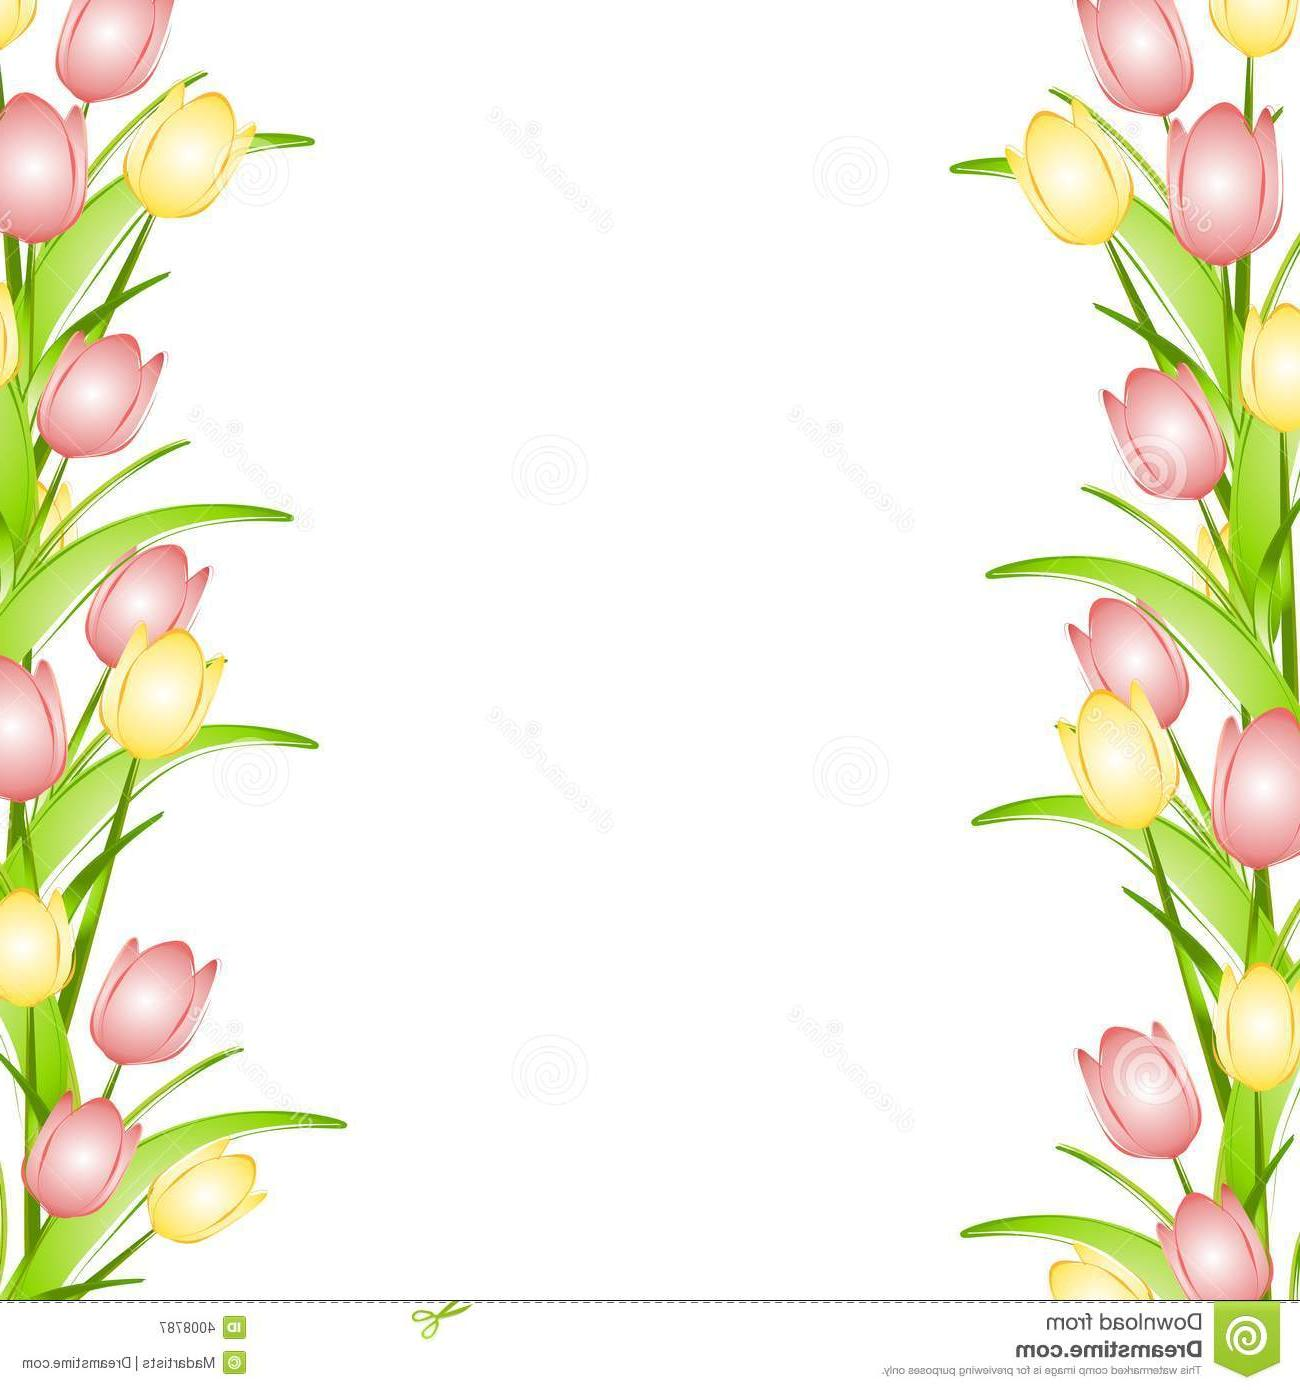 1300x1390 Best 15 Pink Flower Border Clip Art Yellow Spring Tulips Design